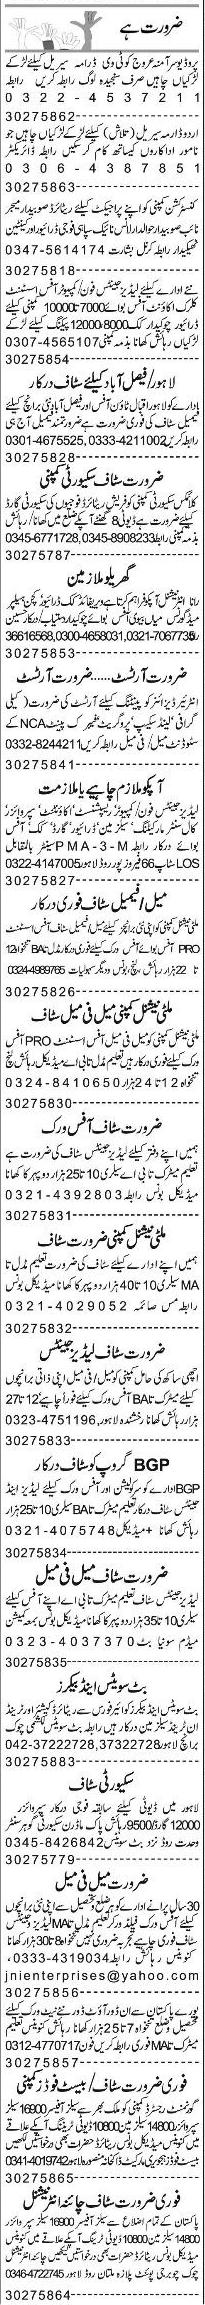 Misc. Jobs in Lahore Express Classified